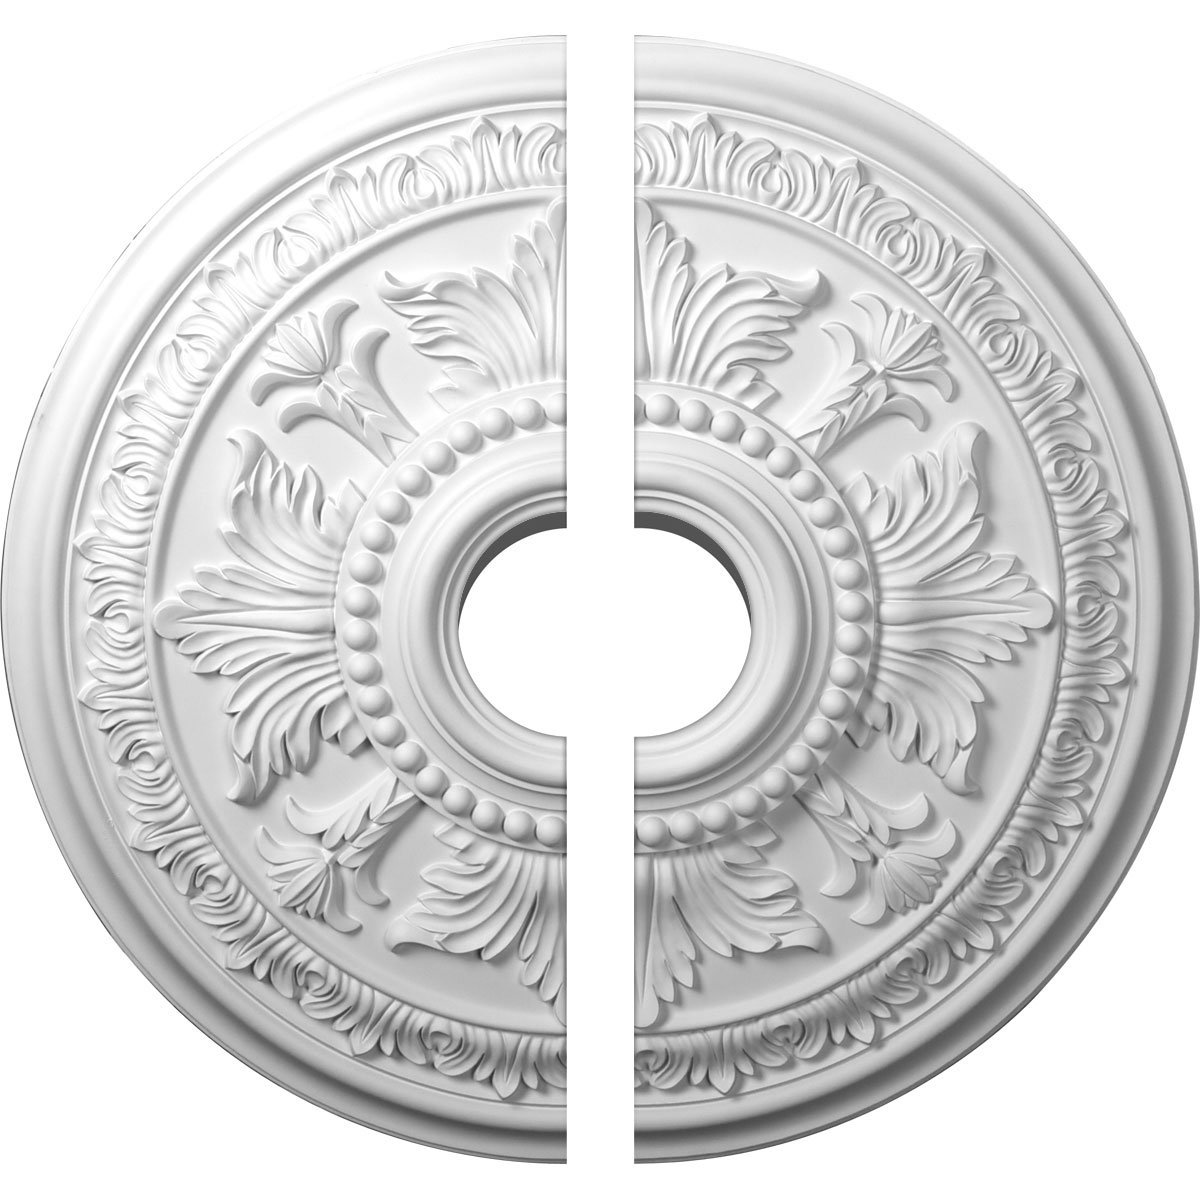 Ekena Millwork CM30TE2-06000 30 5/8'' OD ID x 2 1/2'' P Tellson Ceiling Medallion, Two Piece (Fits Canopies up to 6 3/4''), Factory Primed White